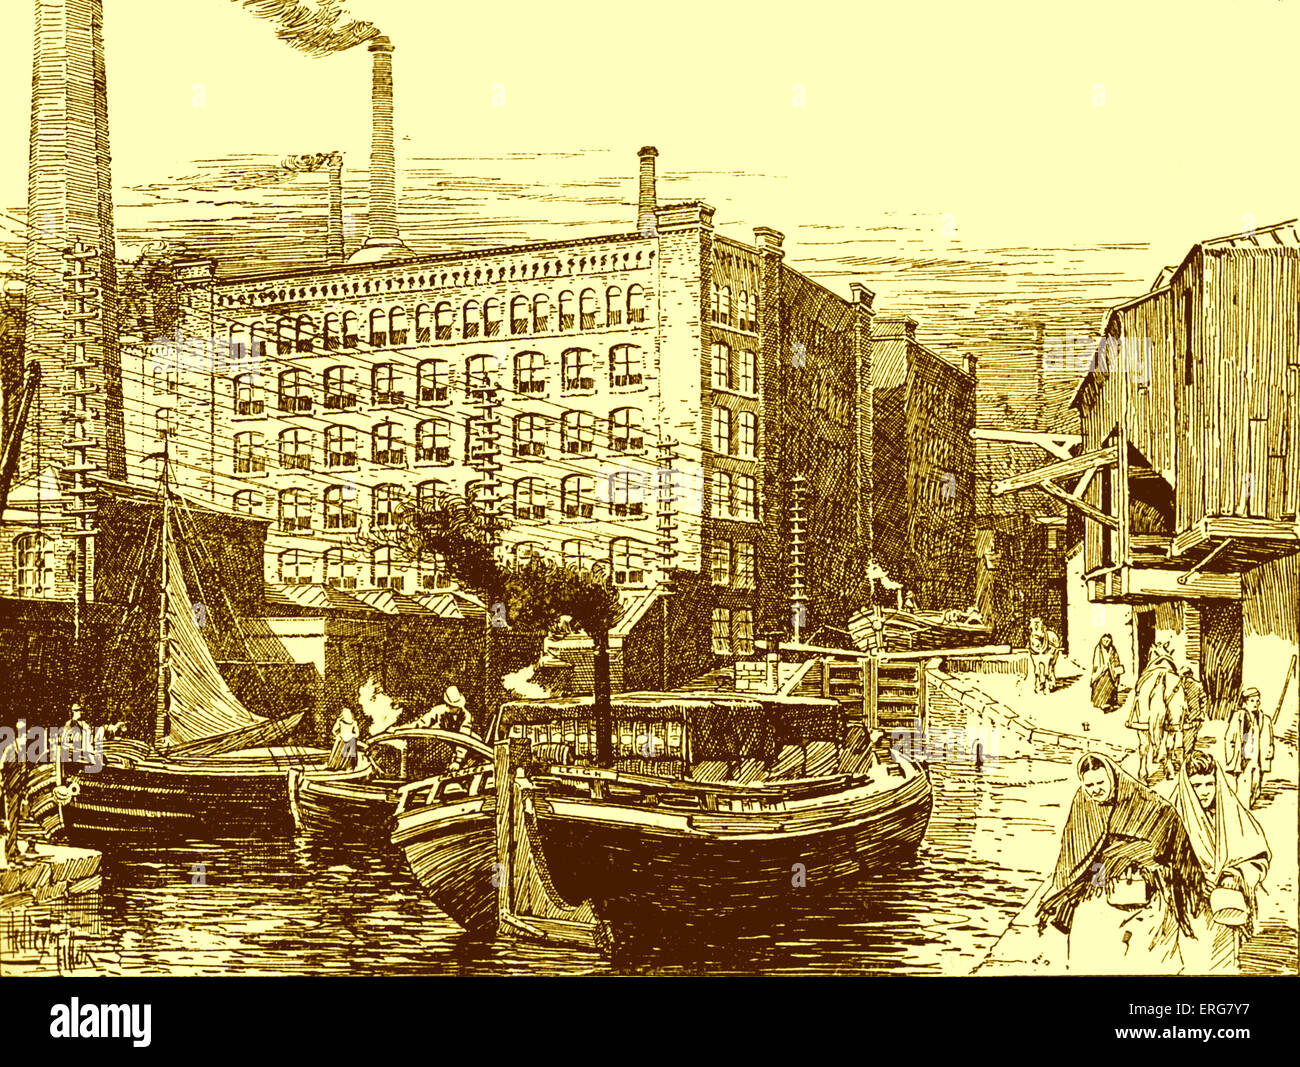 19th century factory building stock photos 19th century factory building stock images alamy. Black Bedroom Furniture Sets. Home Design Ideas